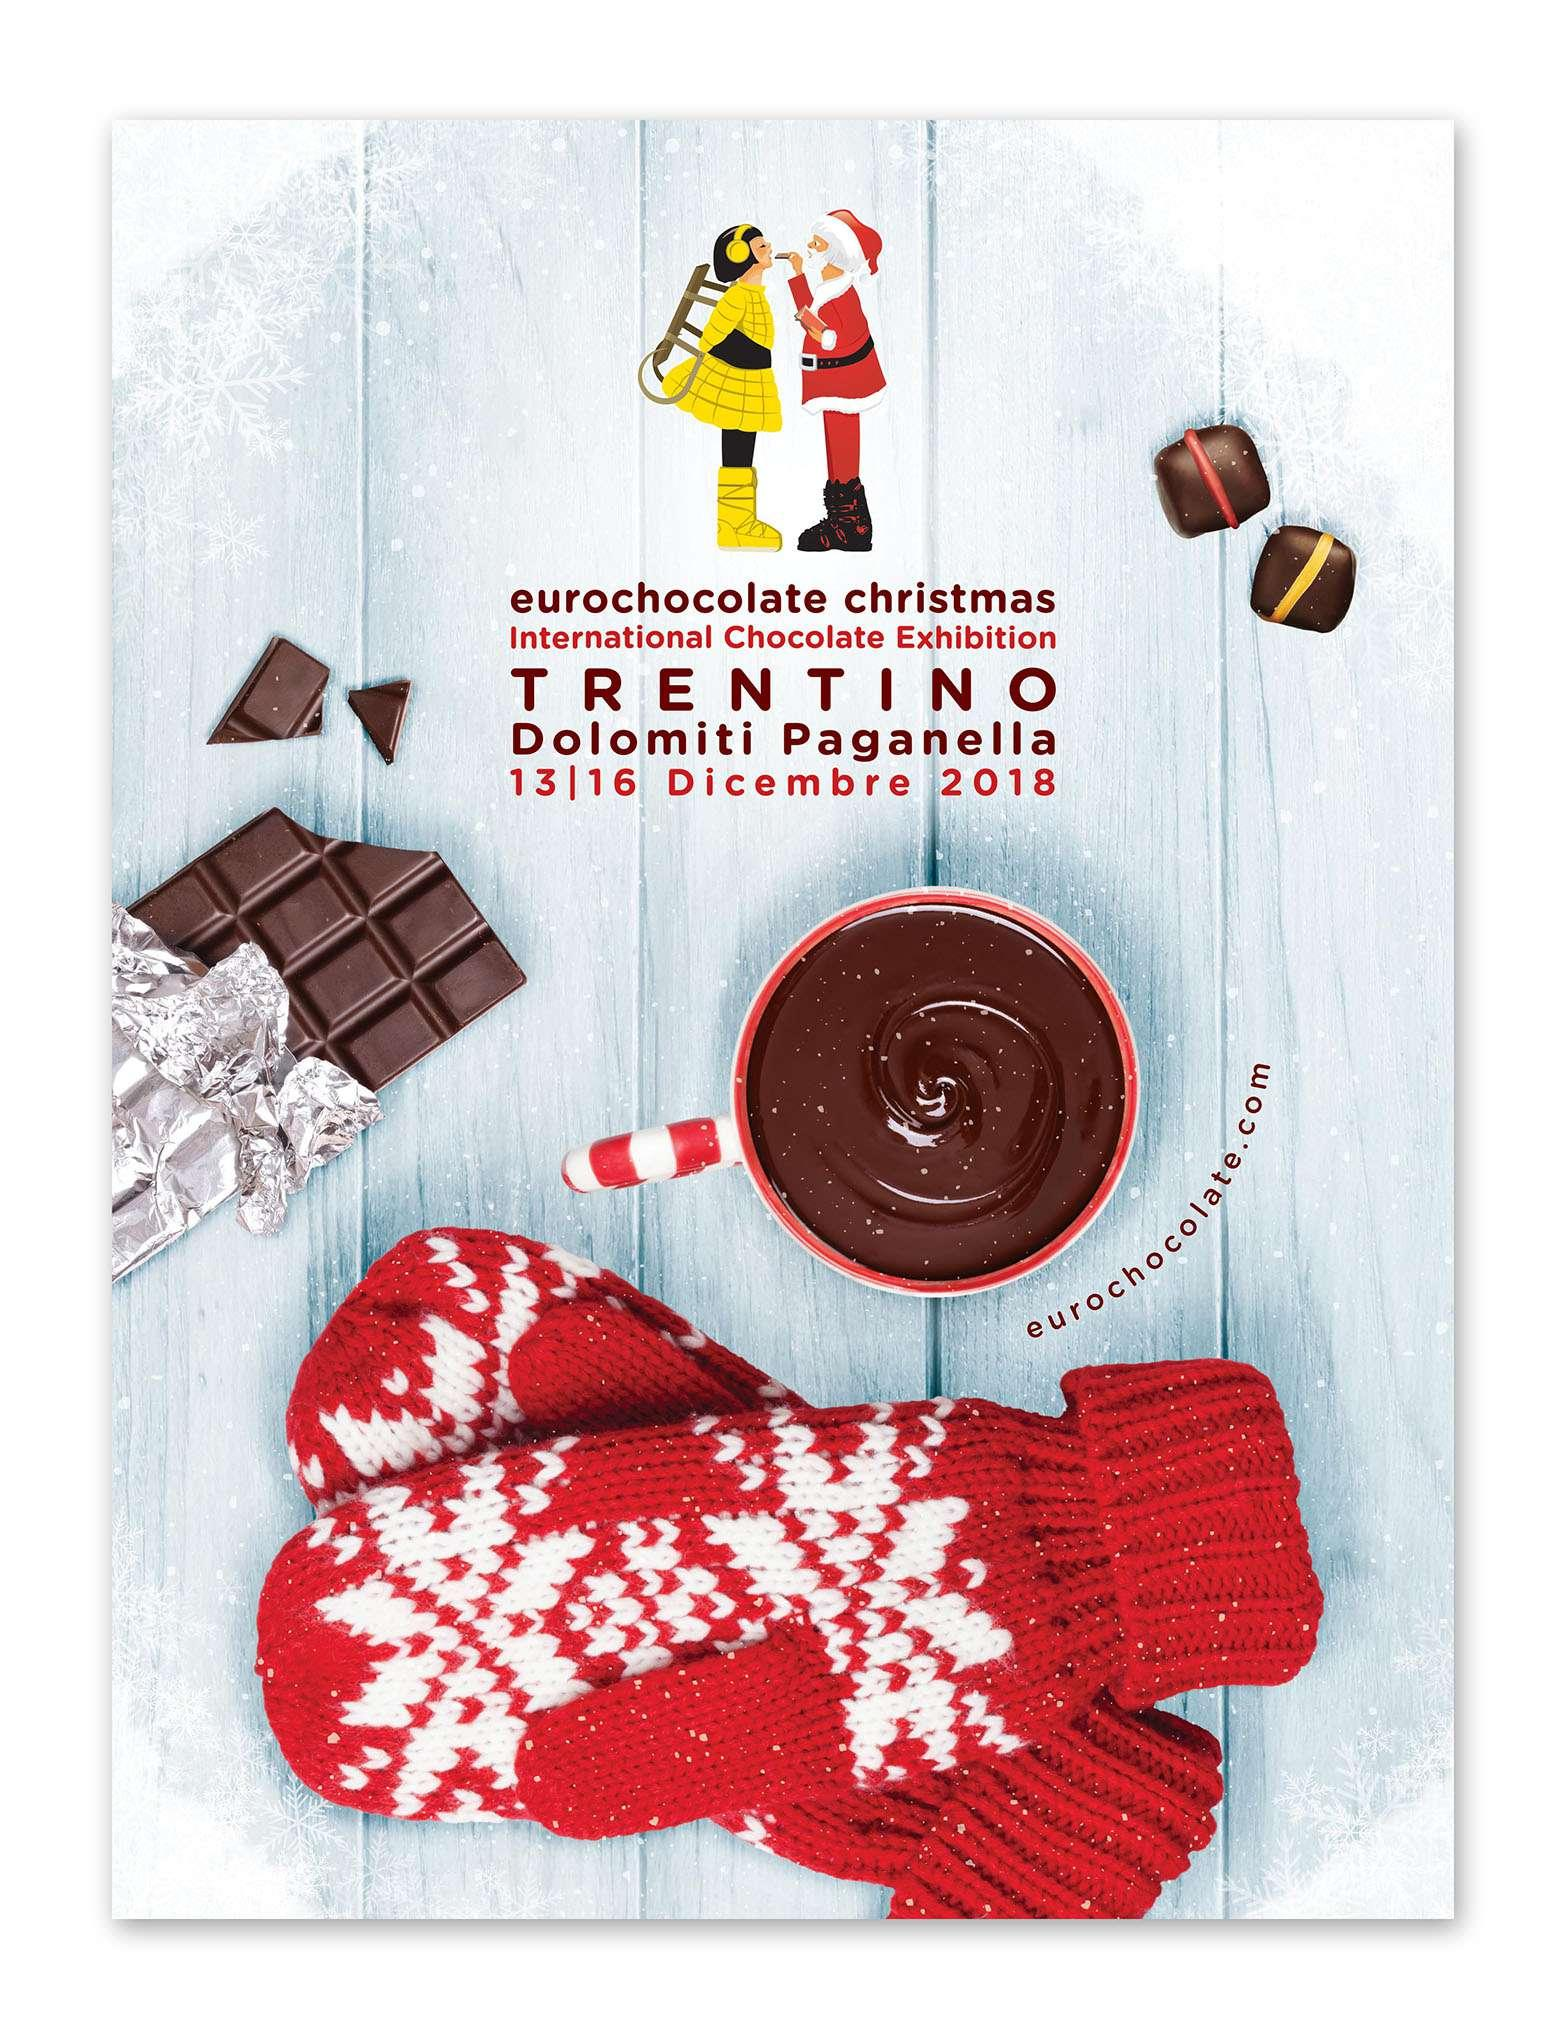 Eurochocolate Christmas